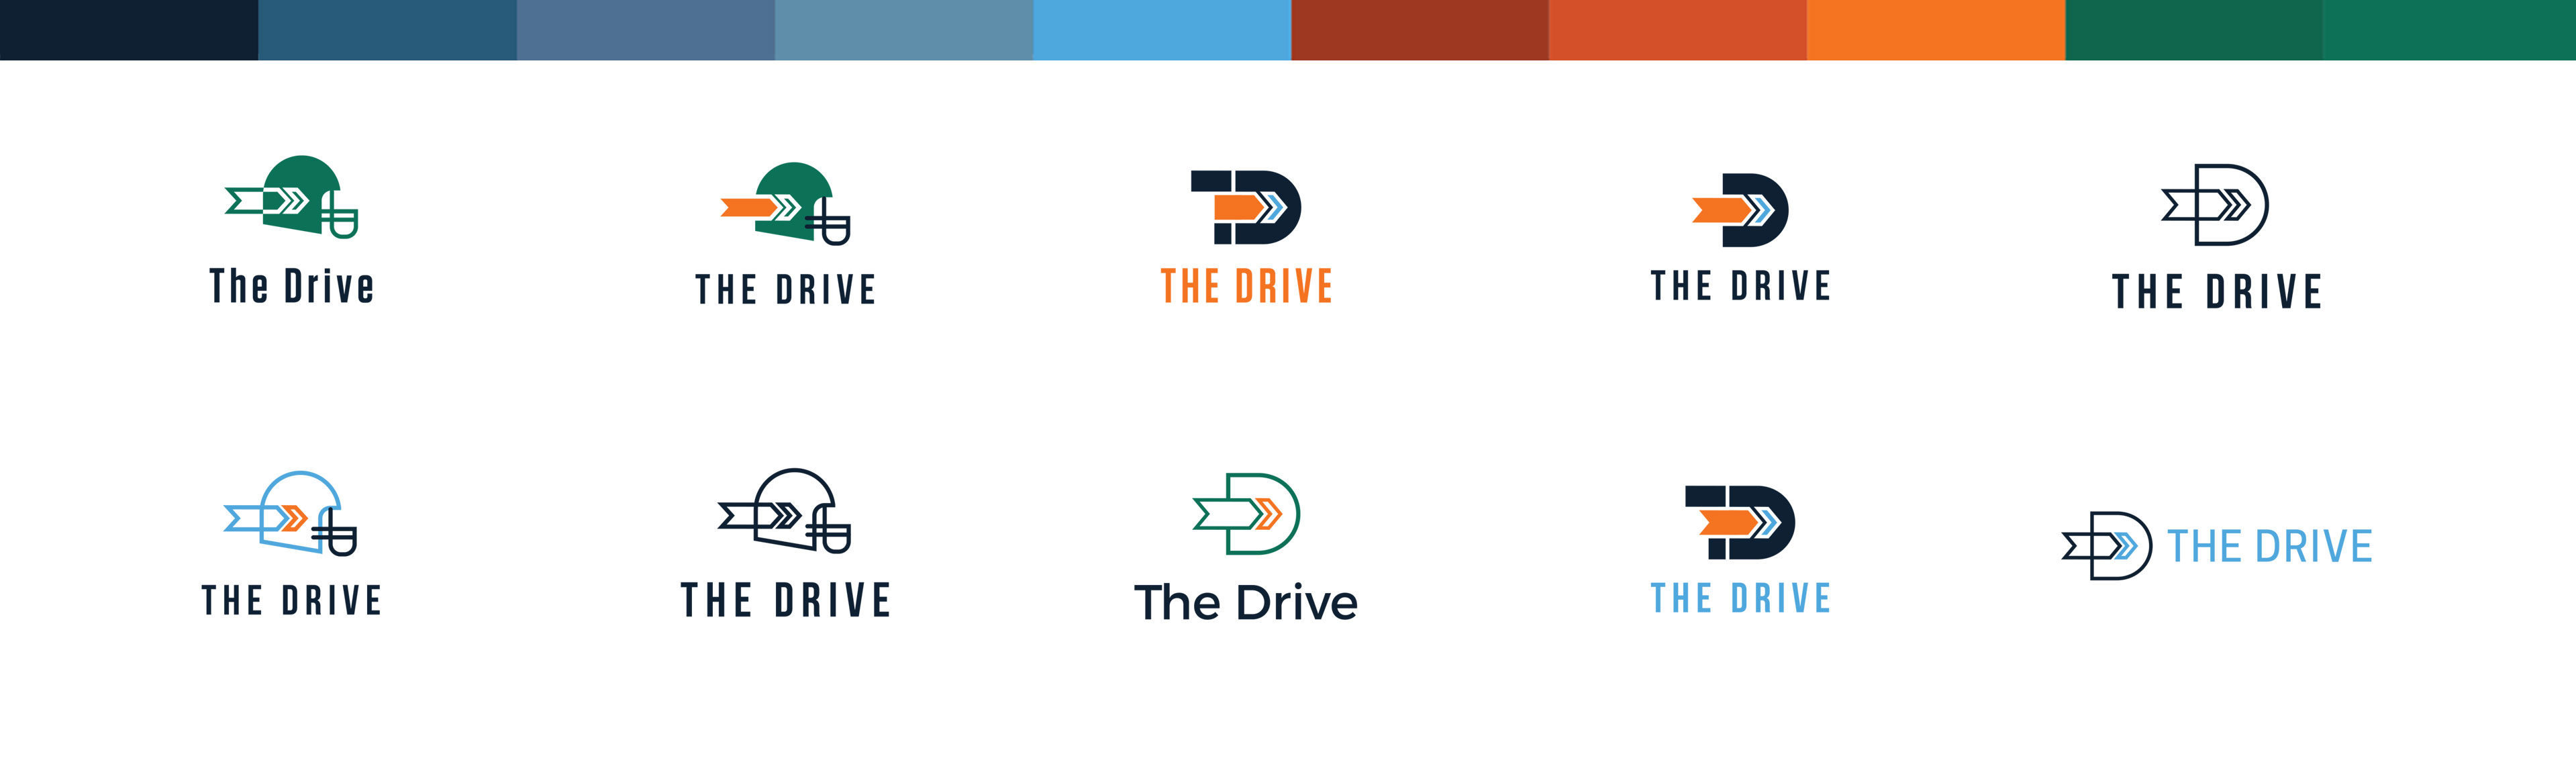 TheDrive_Logos